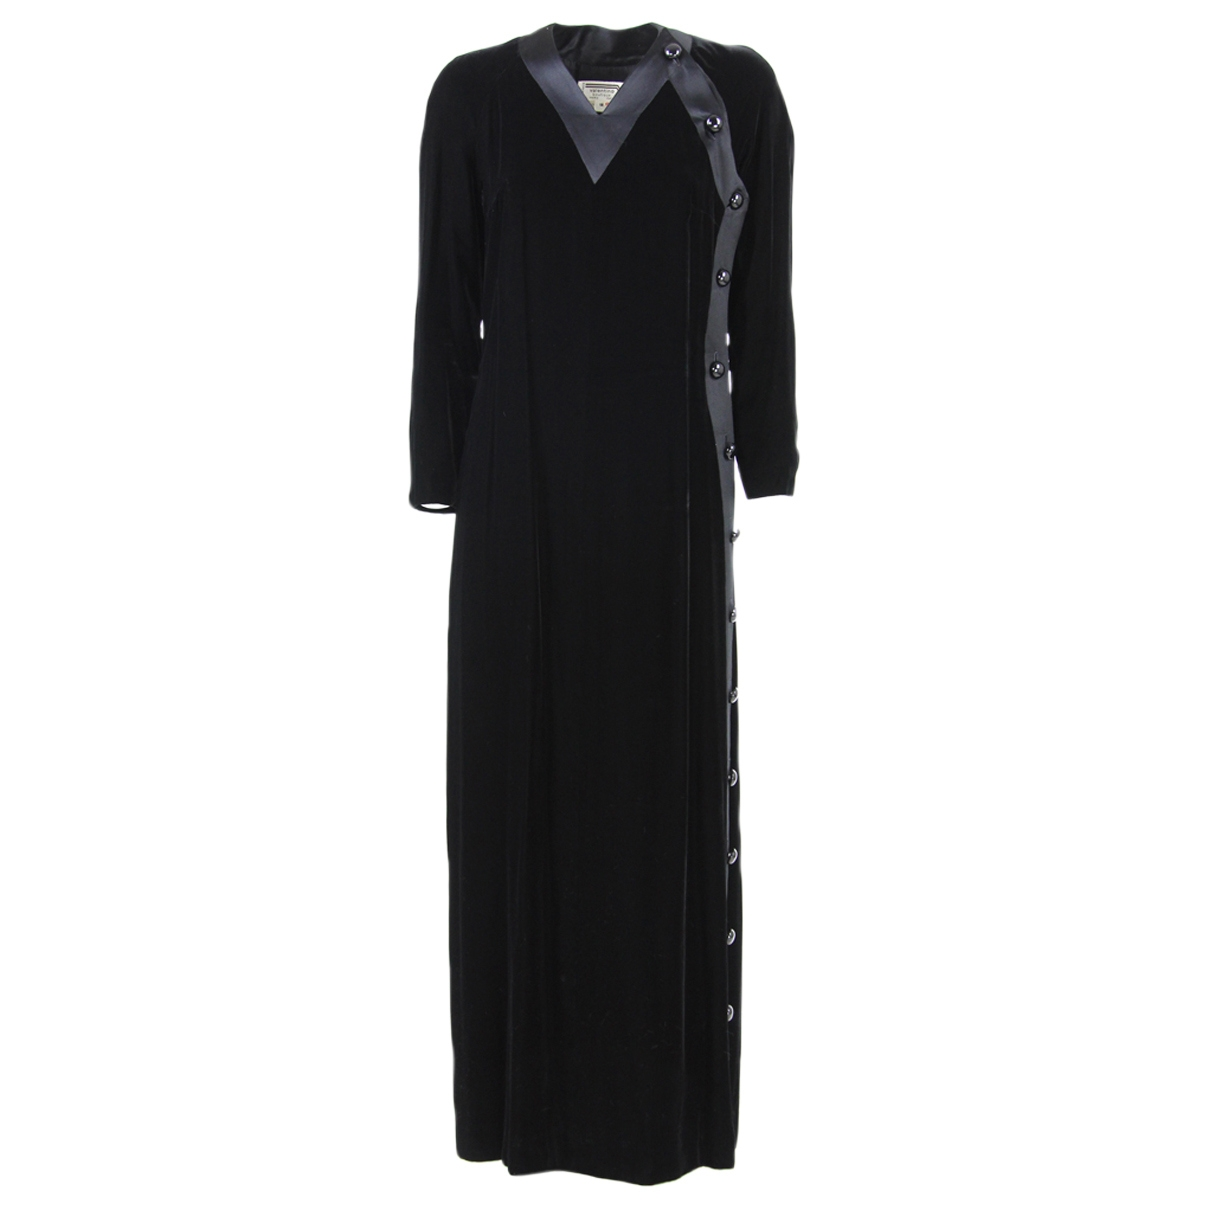 Valentino Garavani \N Black Velvet dress for Women 10 US